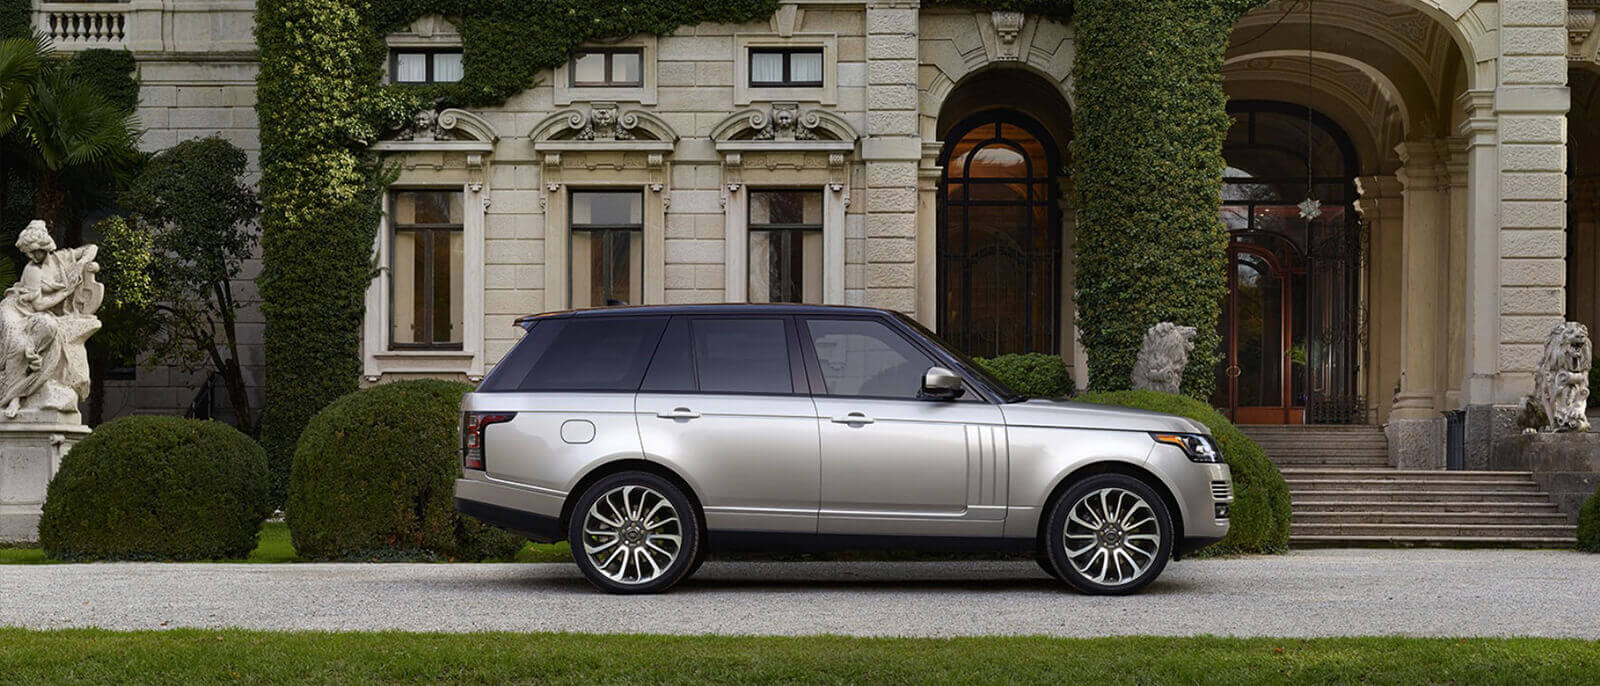 2017 Land Rover Range Rover profile view in the city